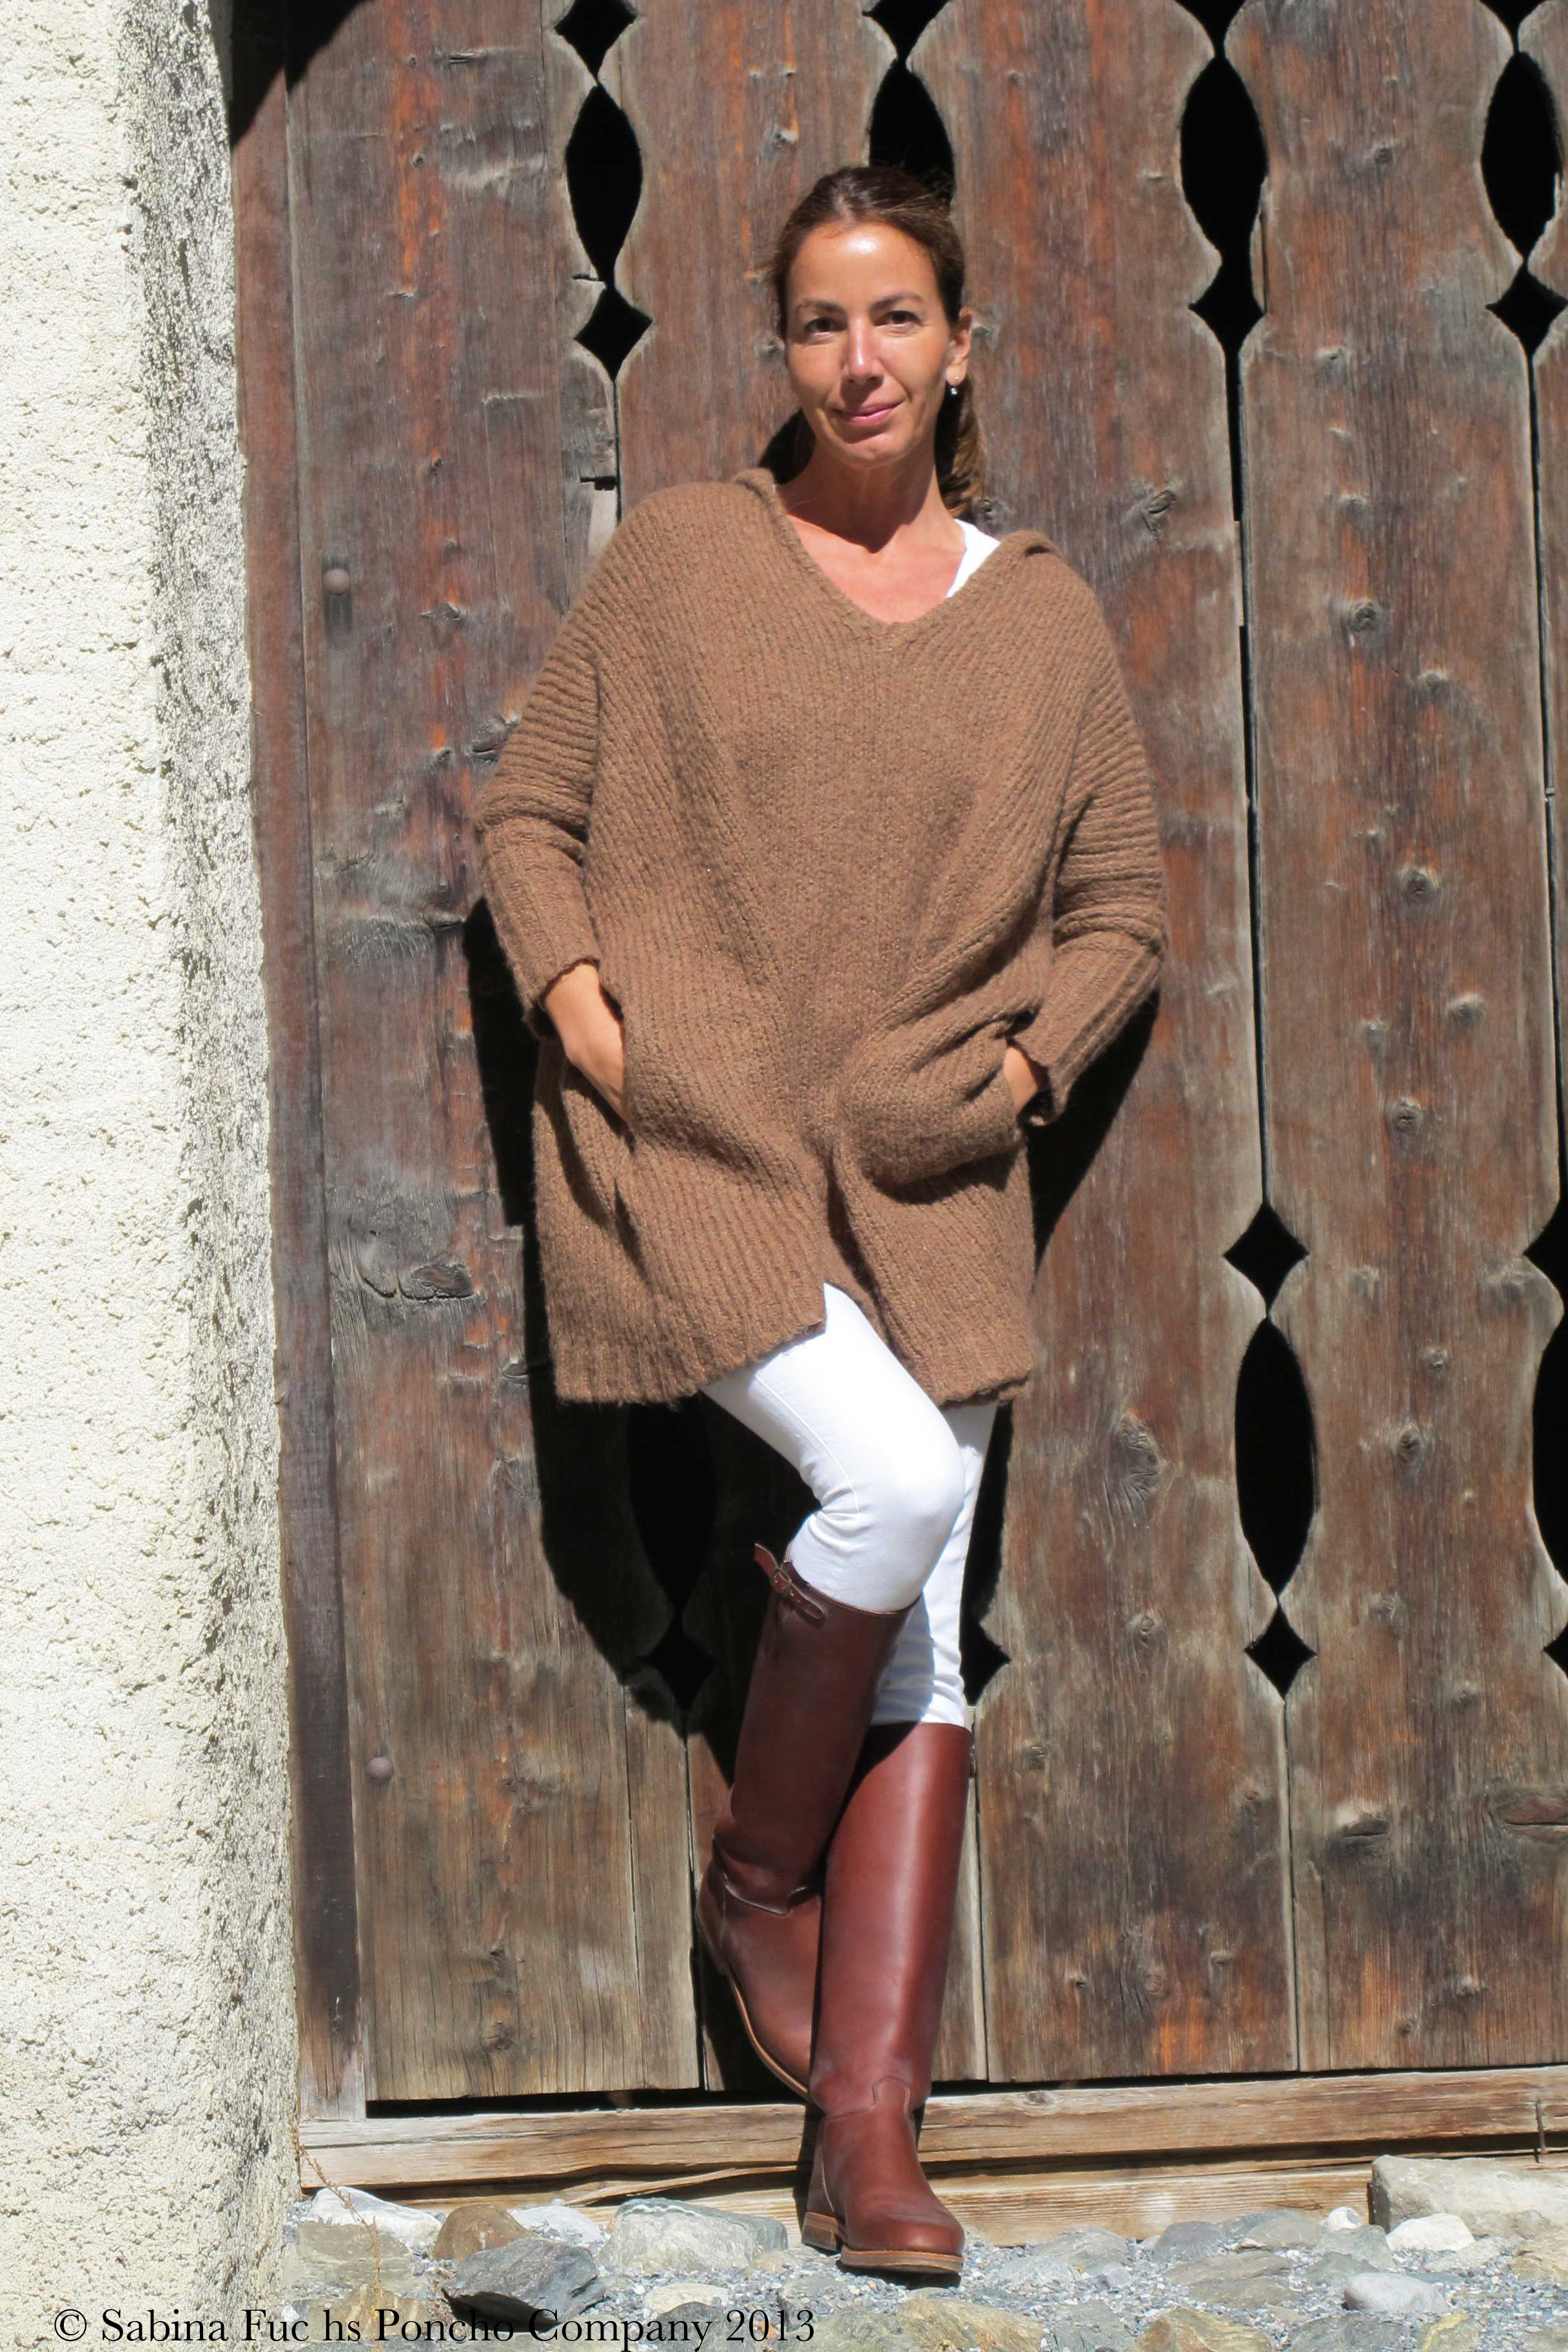 d8bd020b94d HANDCRAFTED BOOTS FROM THE CAMARGUE | The Poncho Company Blog